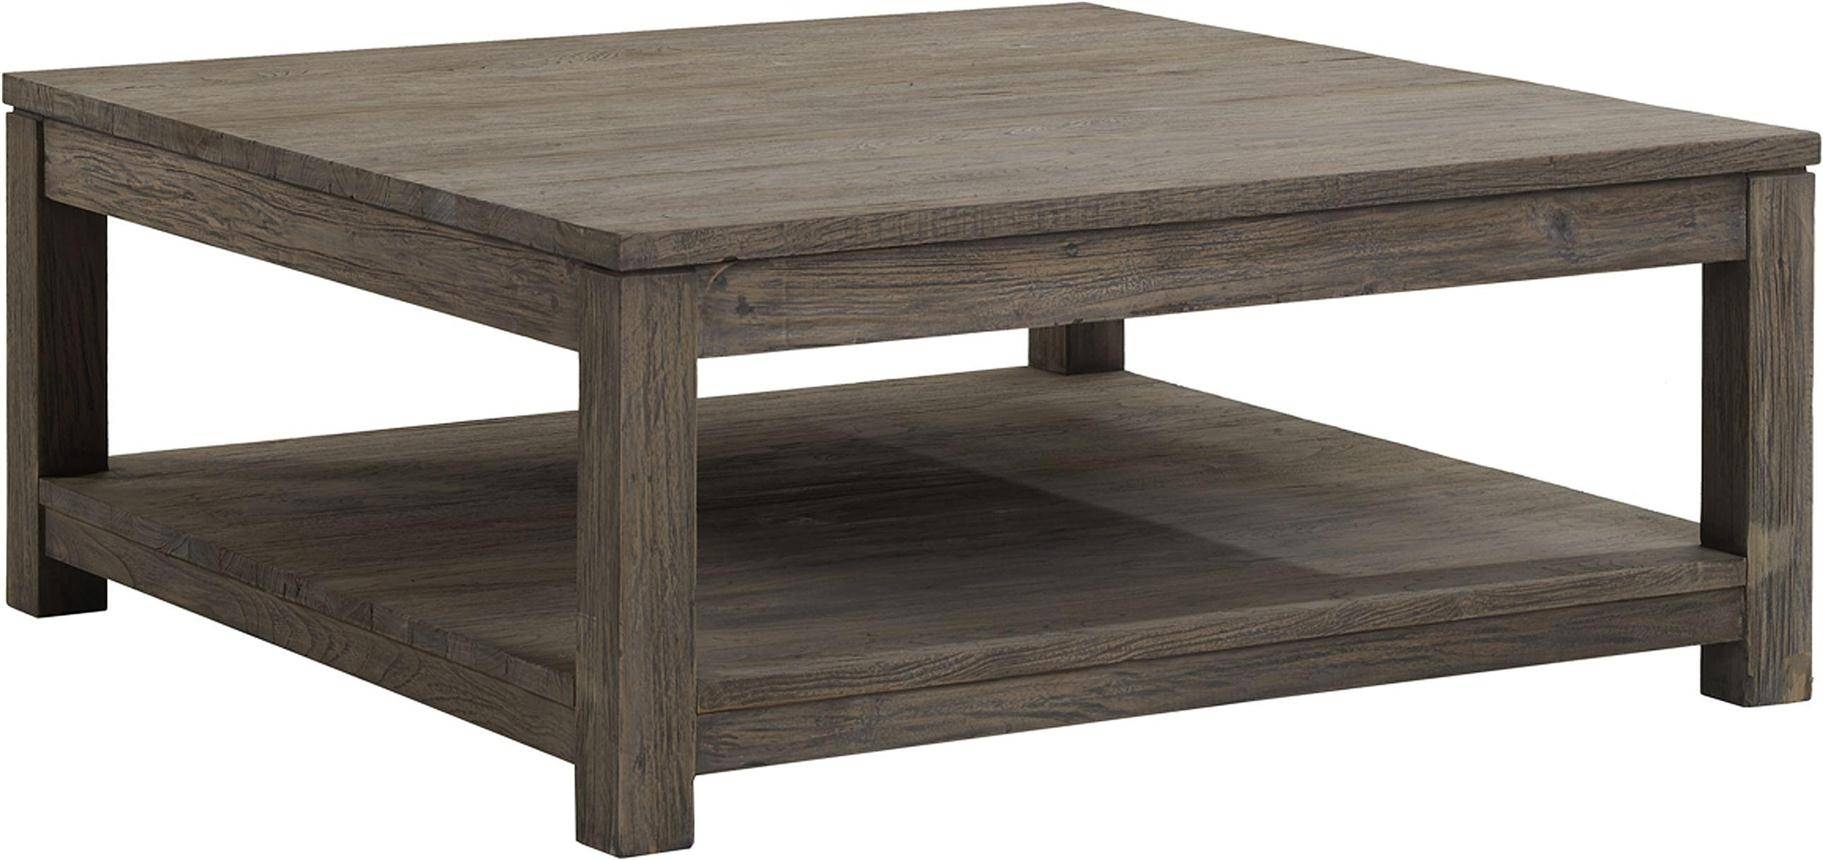 Coffee Table: Marvelous Wood Coffee Table Design Ideas Square within Grey Wood Coffee Tables (Image 8 of 30)